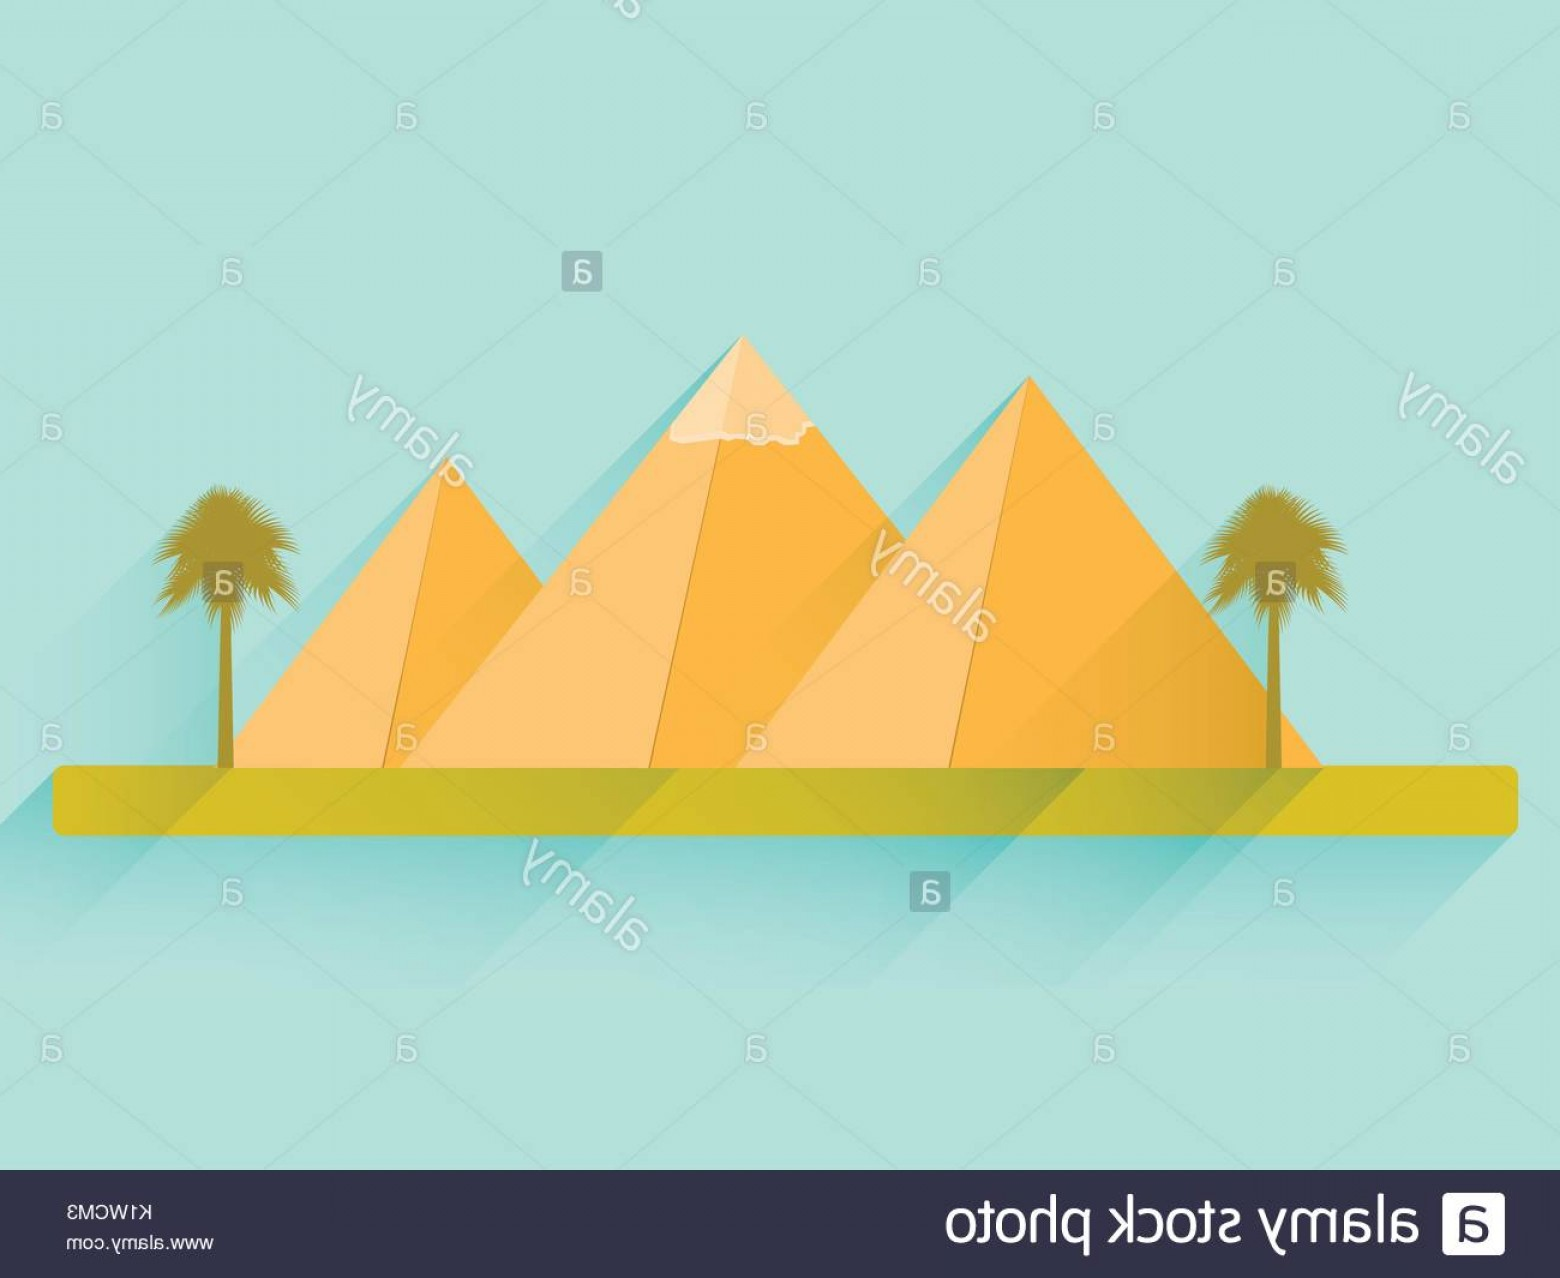 Piramids Vector Art: Egyptian Pyramids Flat Pyramids Landscape With The Egyptian Pyramids Image